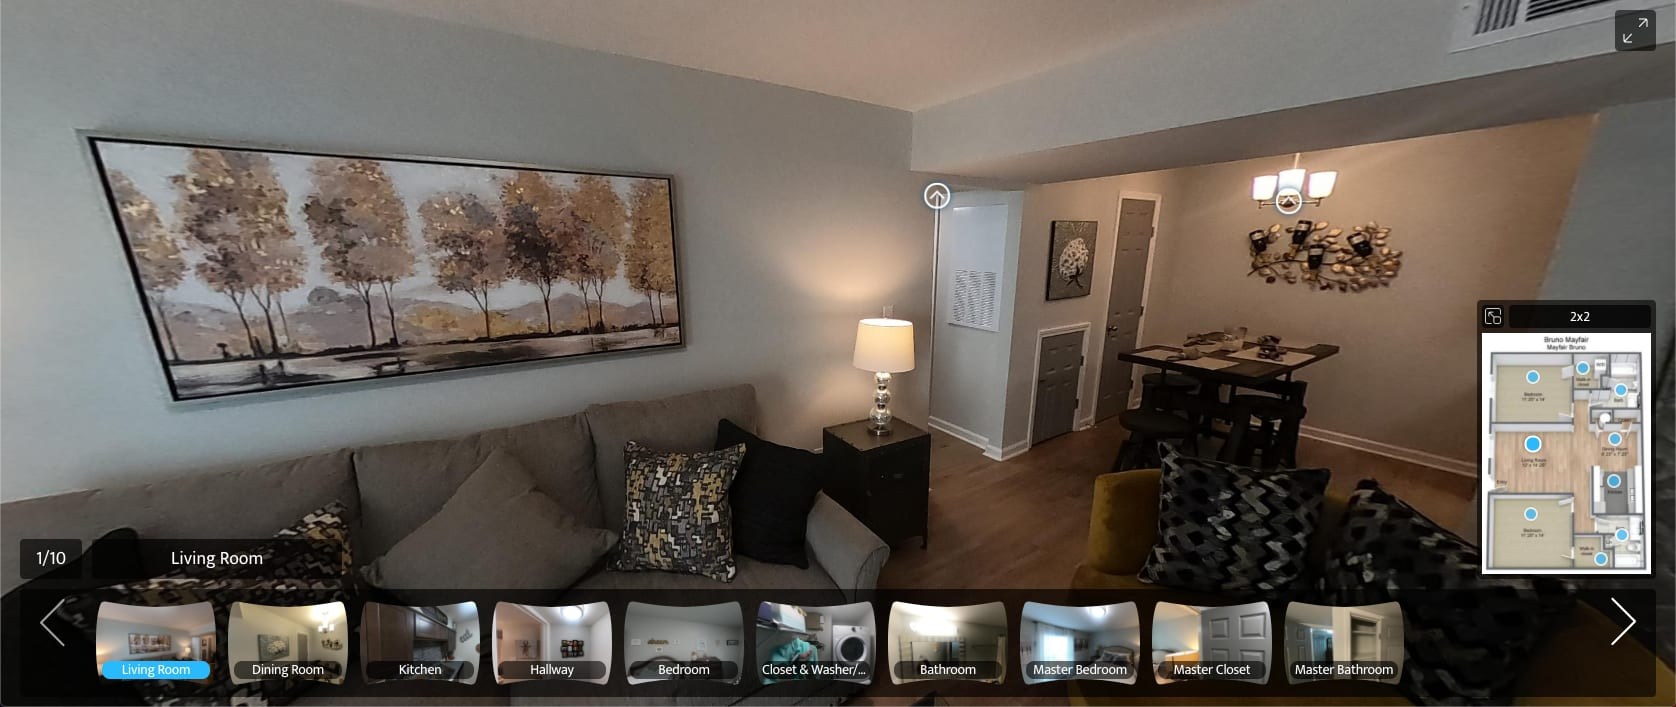 virtual tour of 2 Bedroom 2 Bath apartment at The Mayfair Apartment Homes in New Orleans, Louisiana